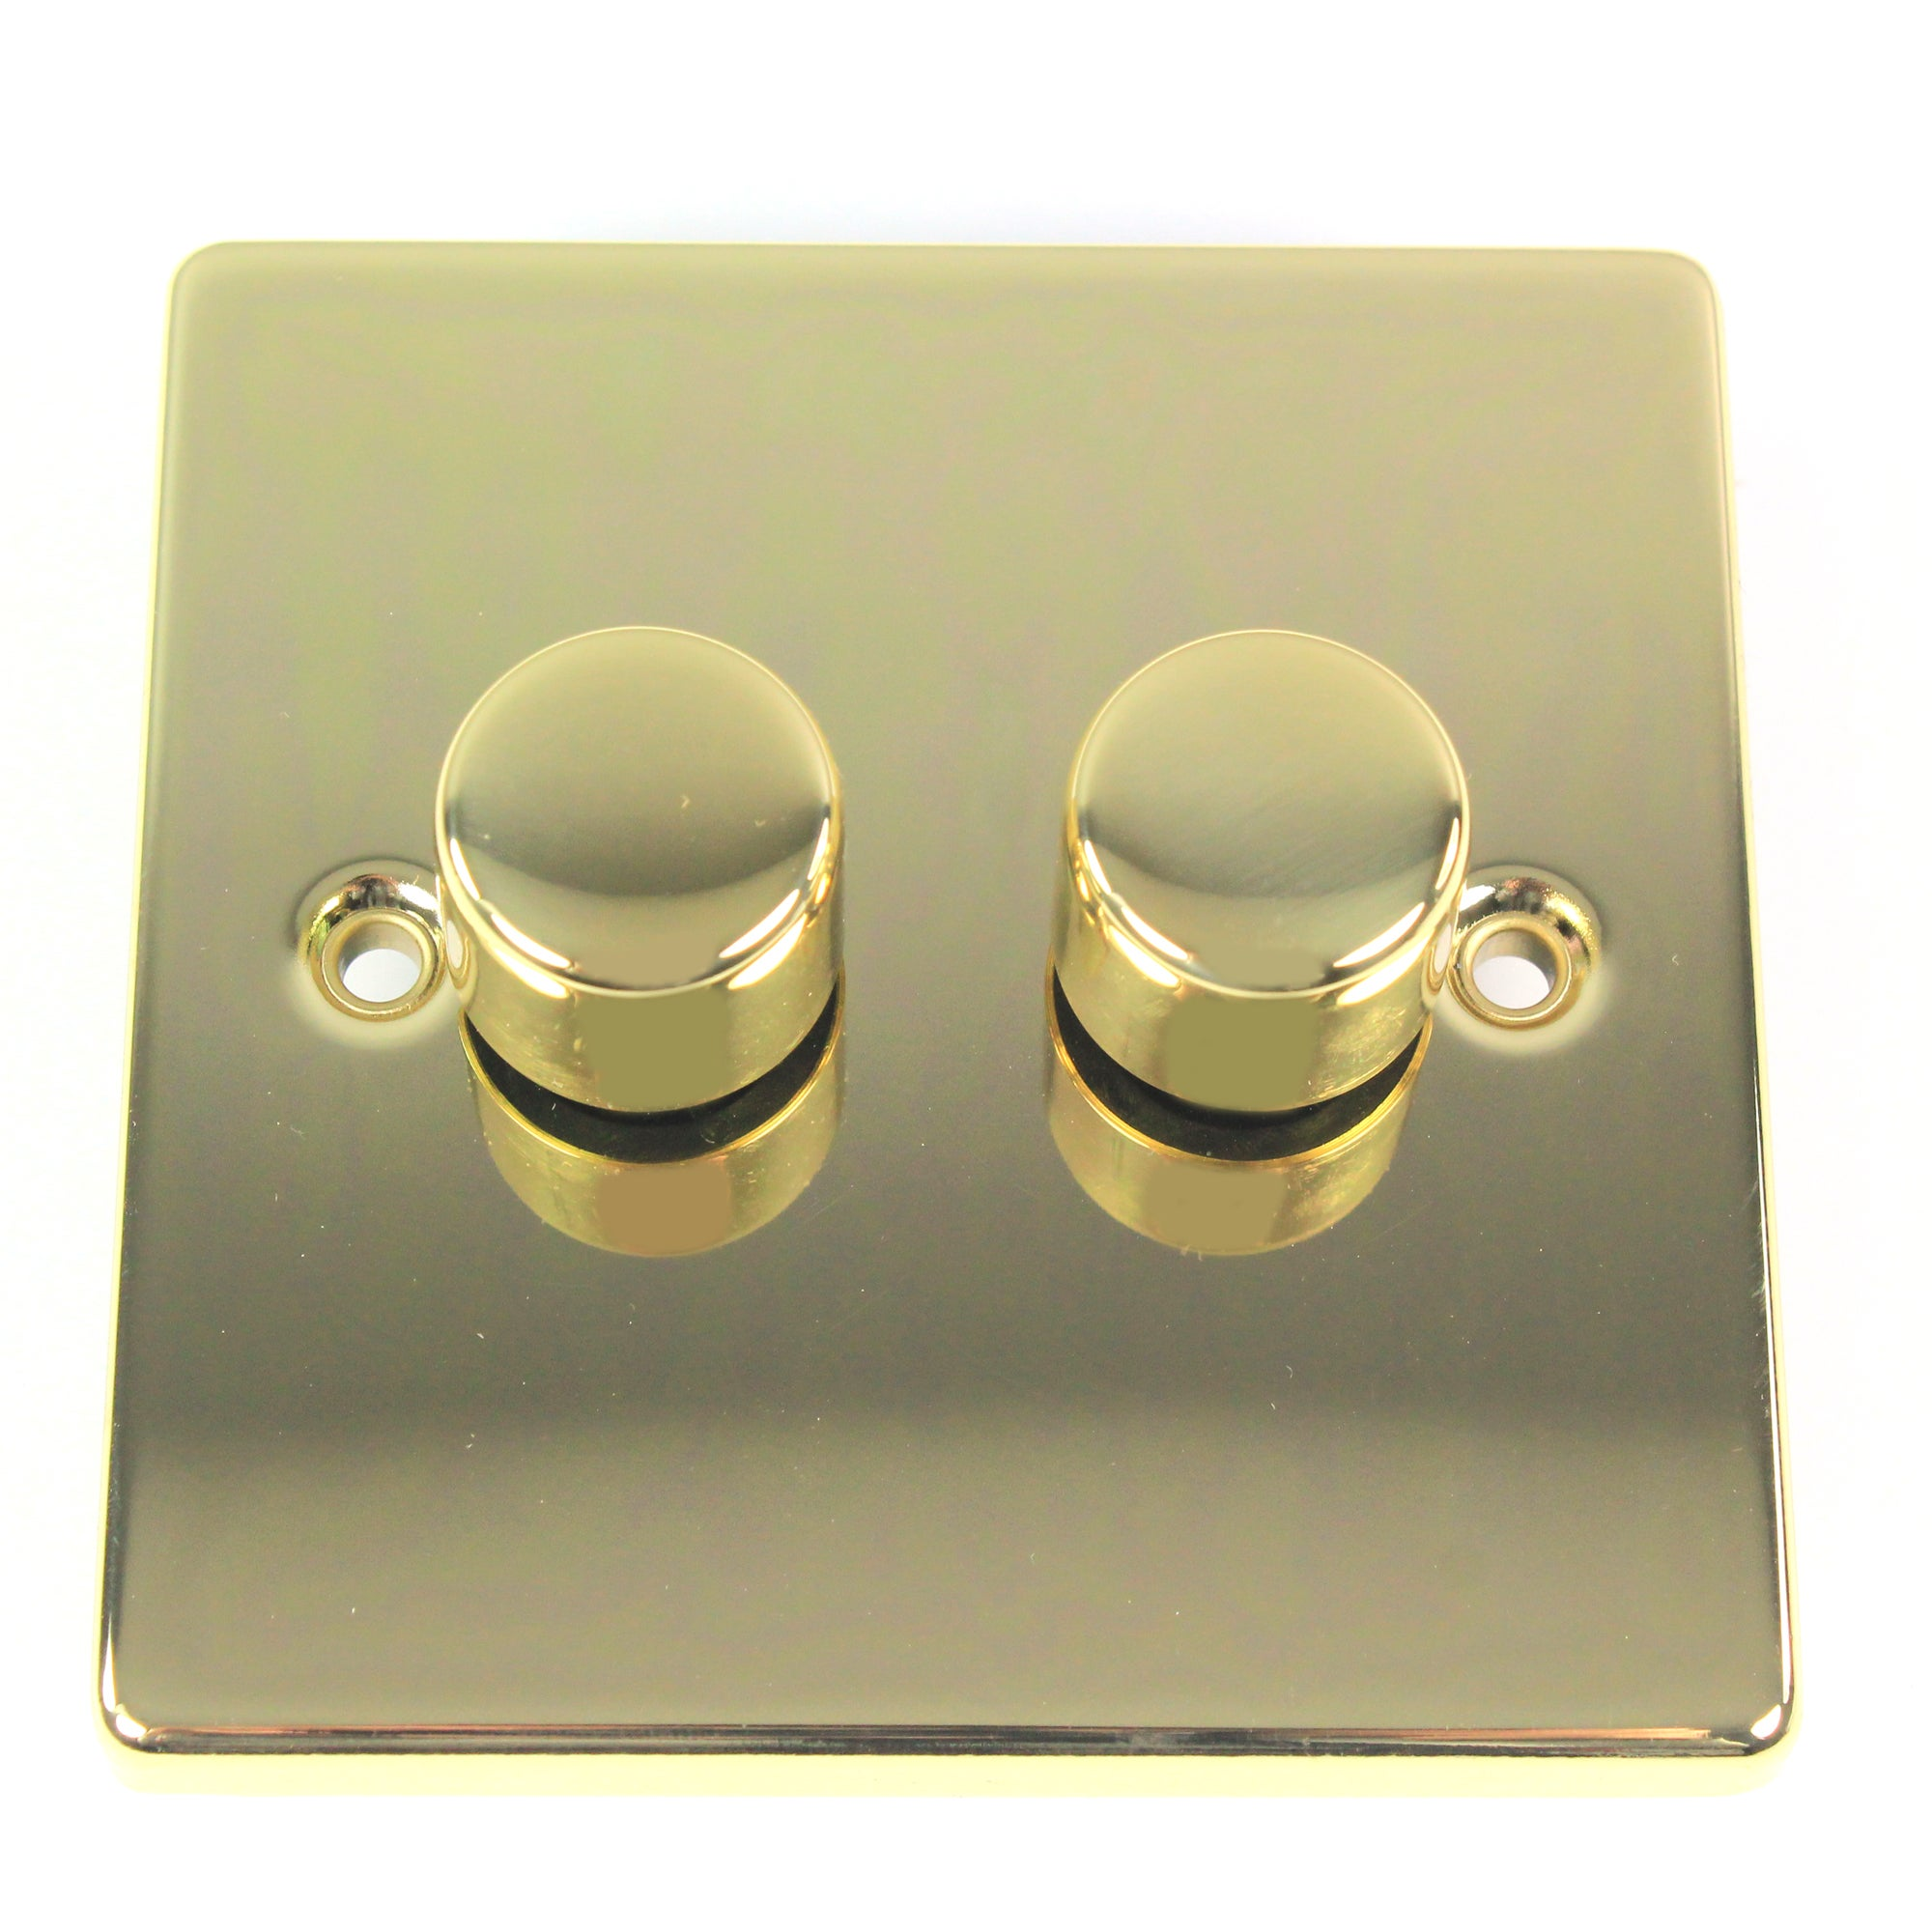 2 Gang 2 Way Antique Brass Dimmer Switch